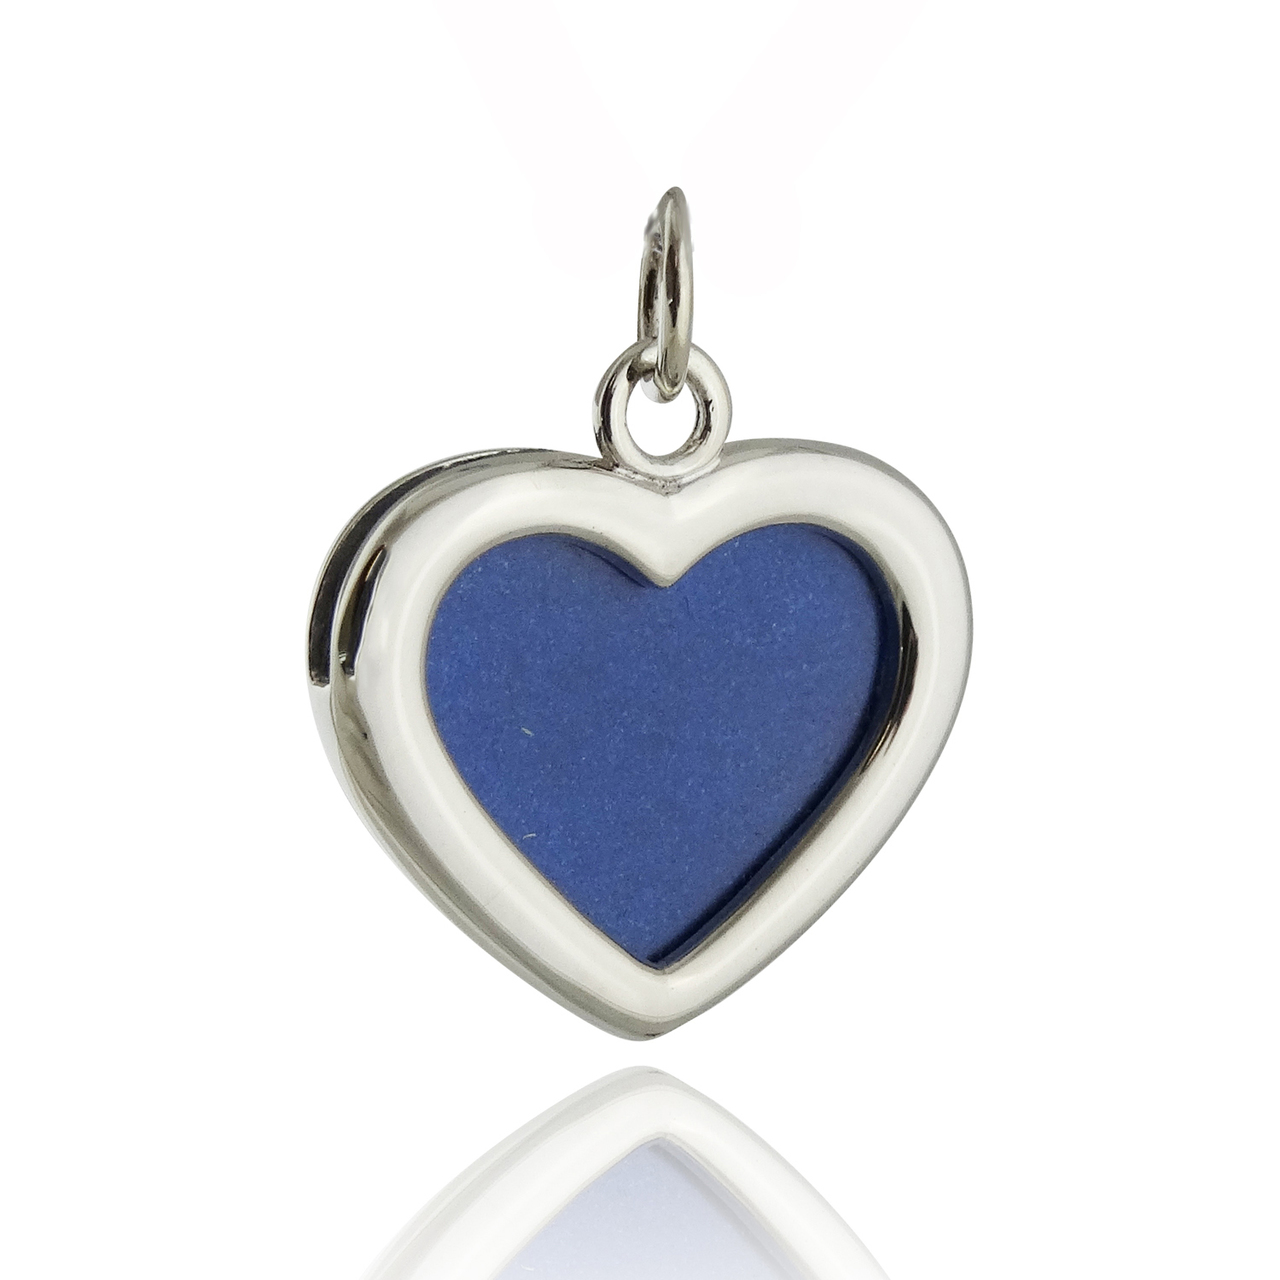 Heart Photo Charm 2-Sided - 925 STERLING SILVER